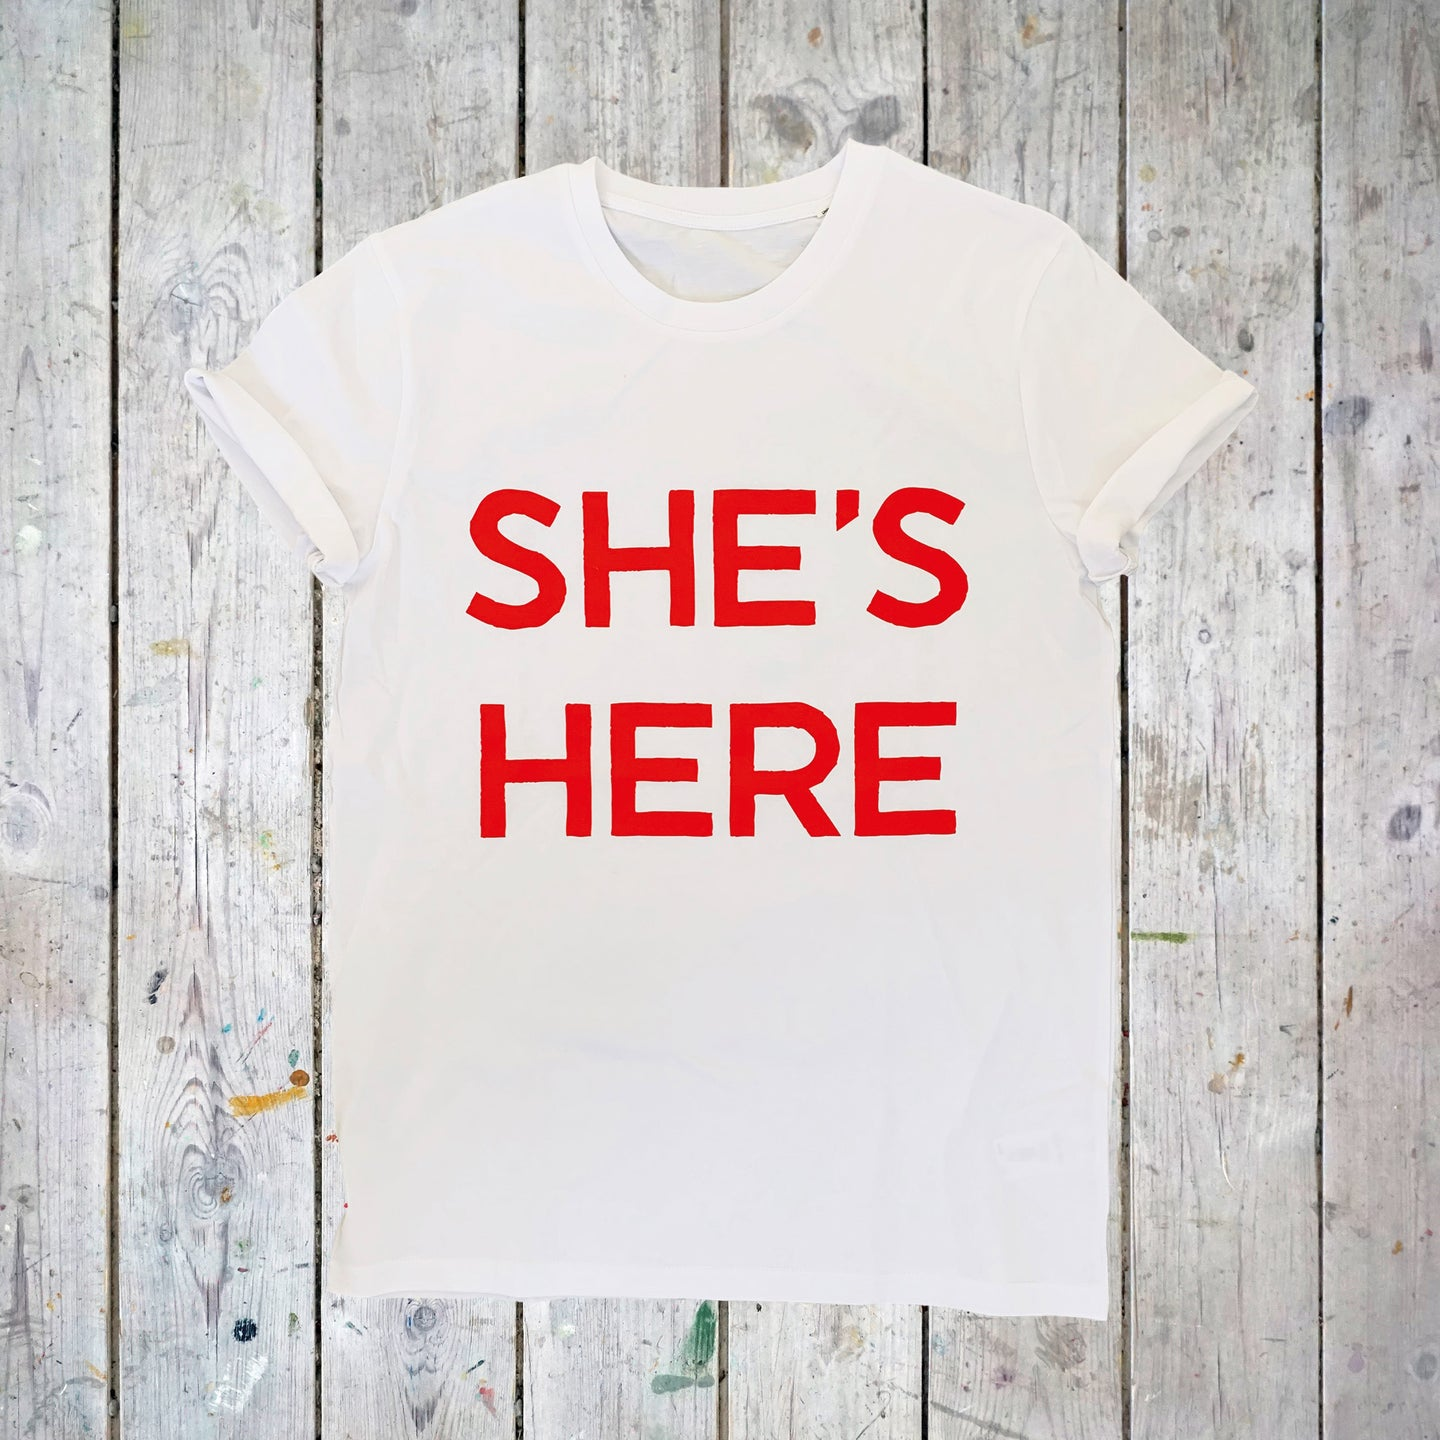 SHE'S HERE: T-SHIRT